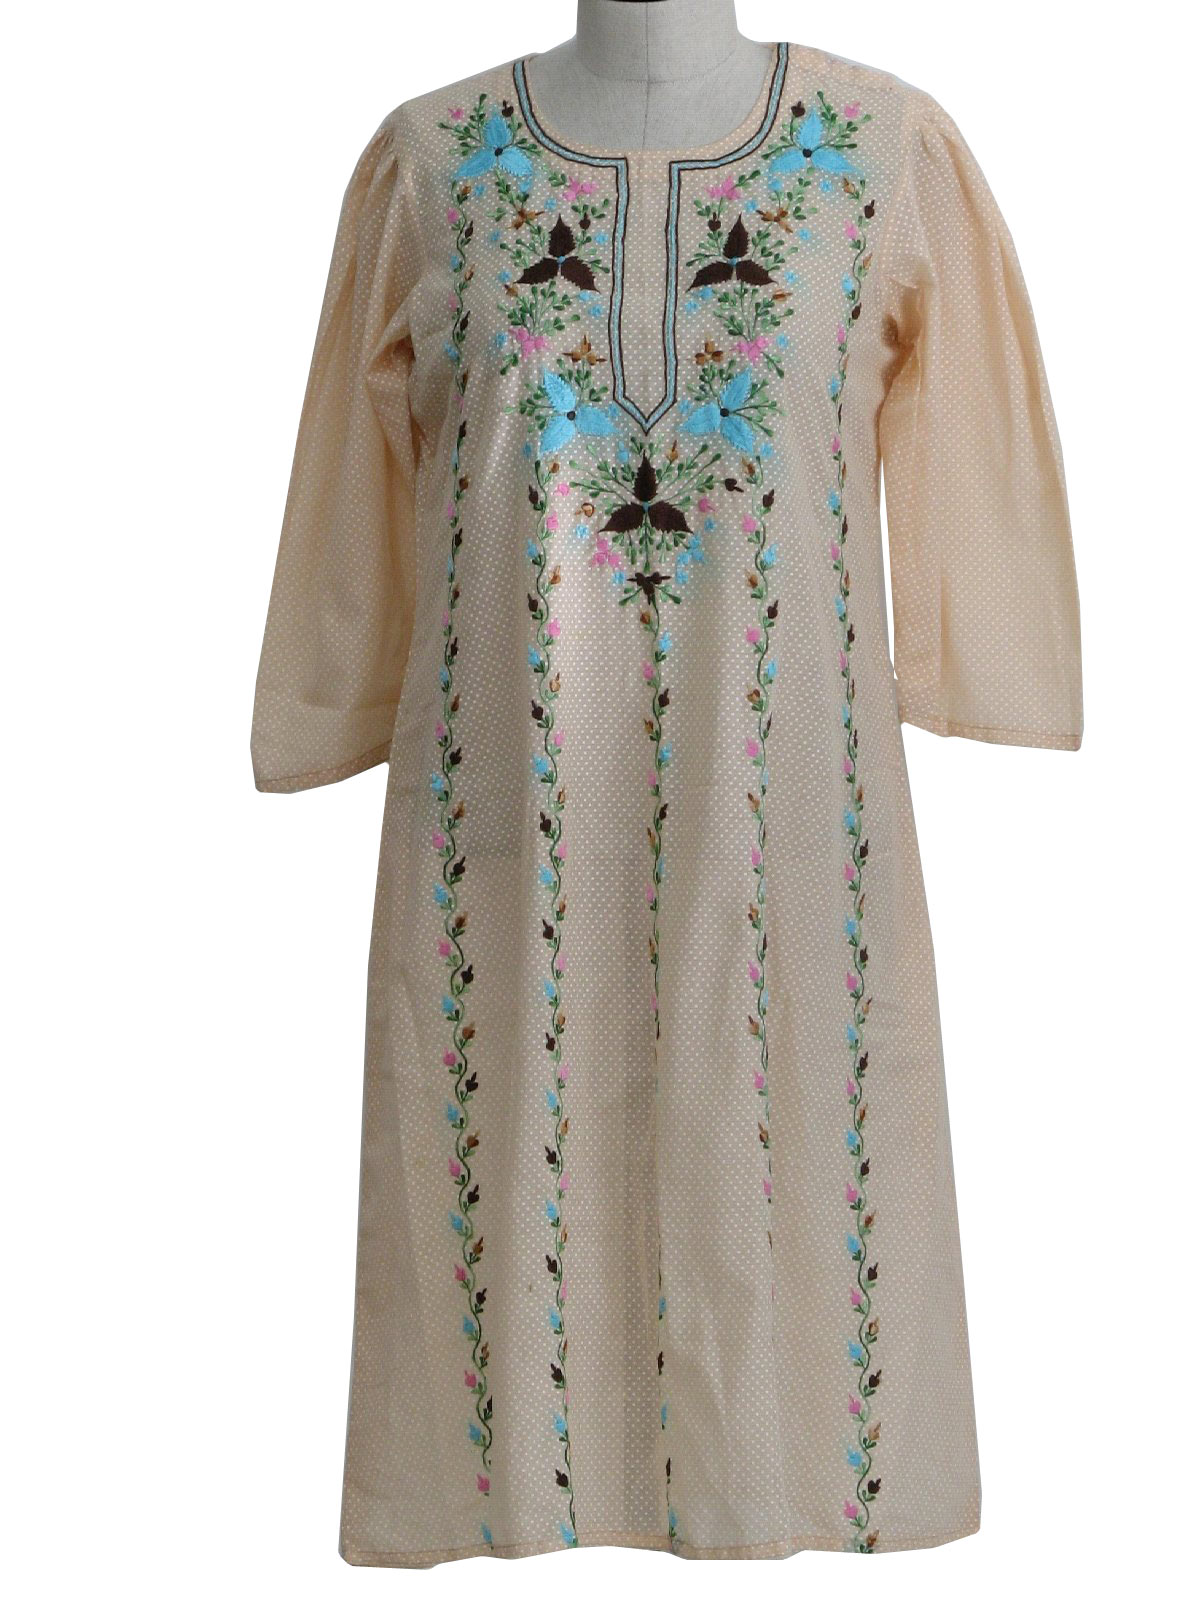 Displaying 12 gt images for hippie dresses